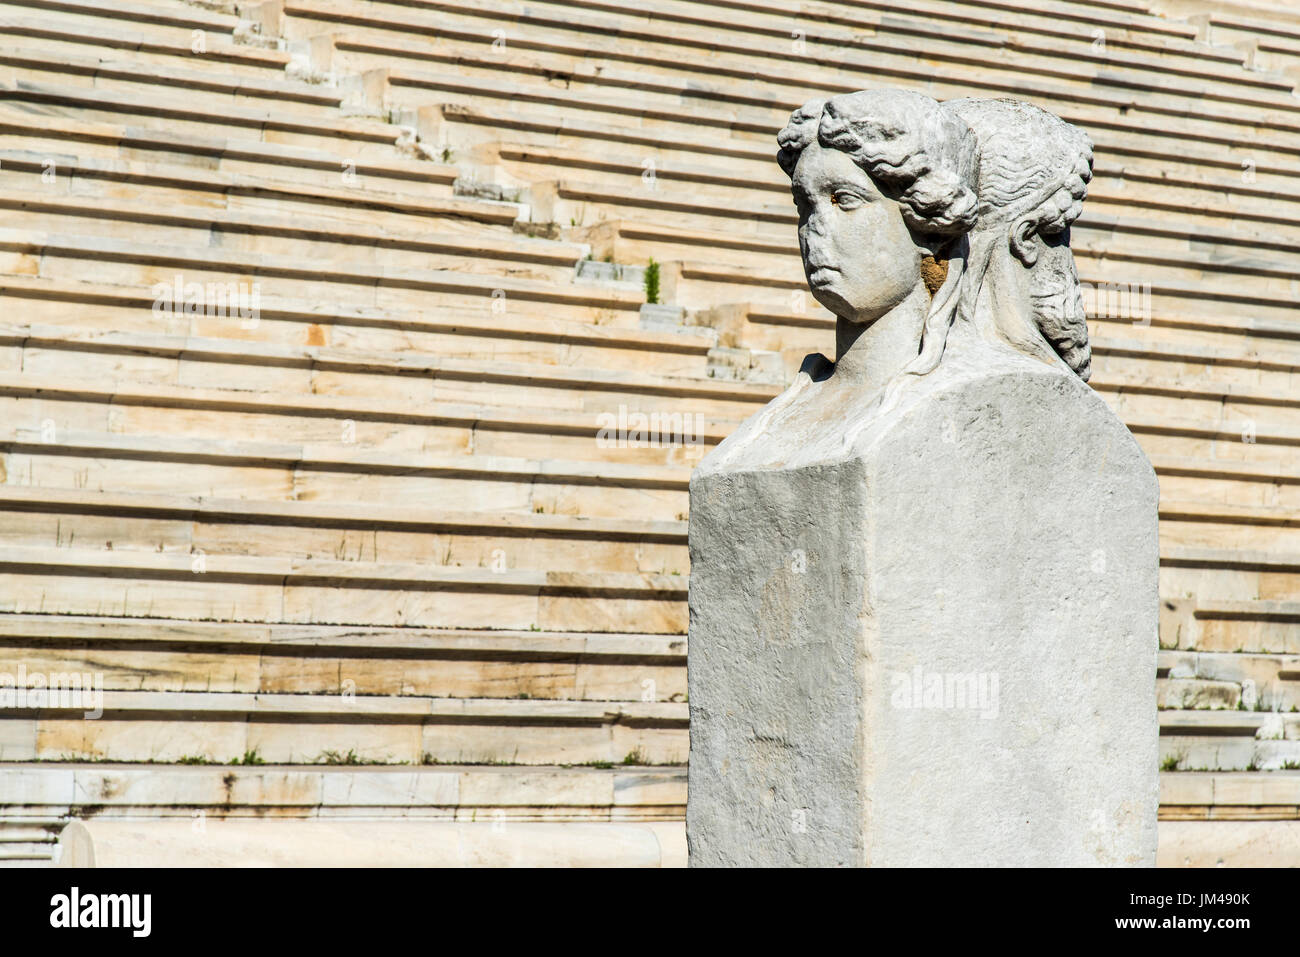 Panathenaic Stadium, Athens, Attica, Greece - Stock Image